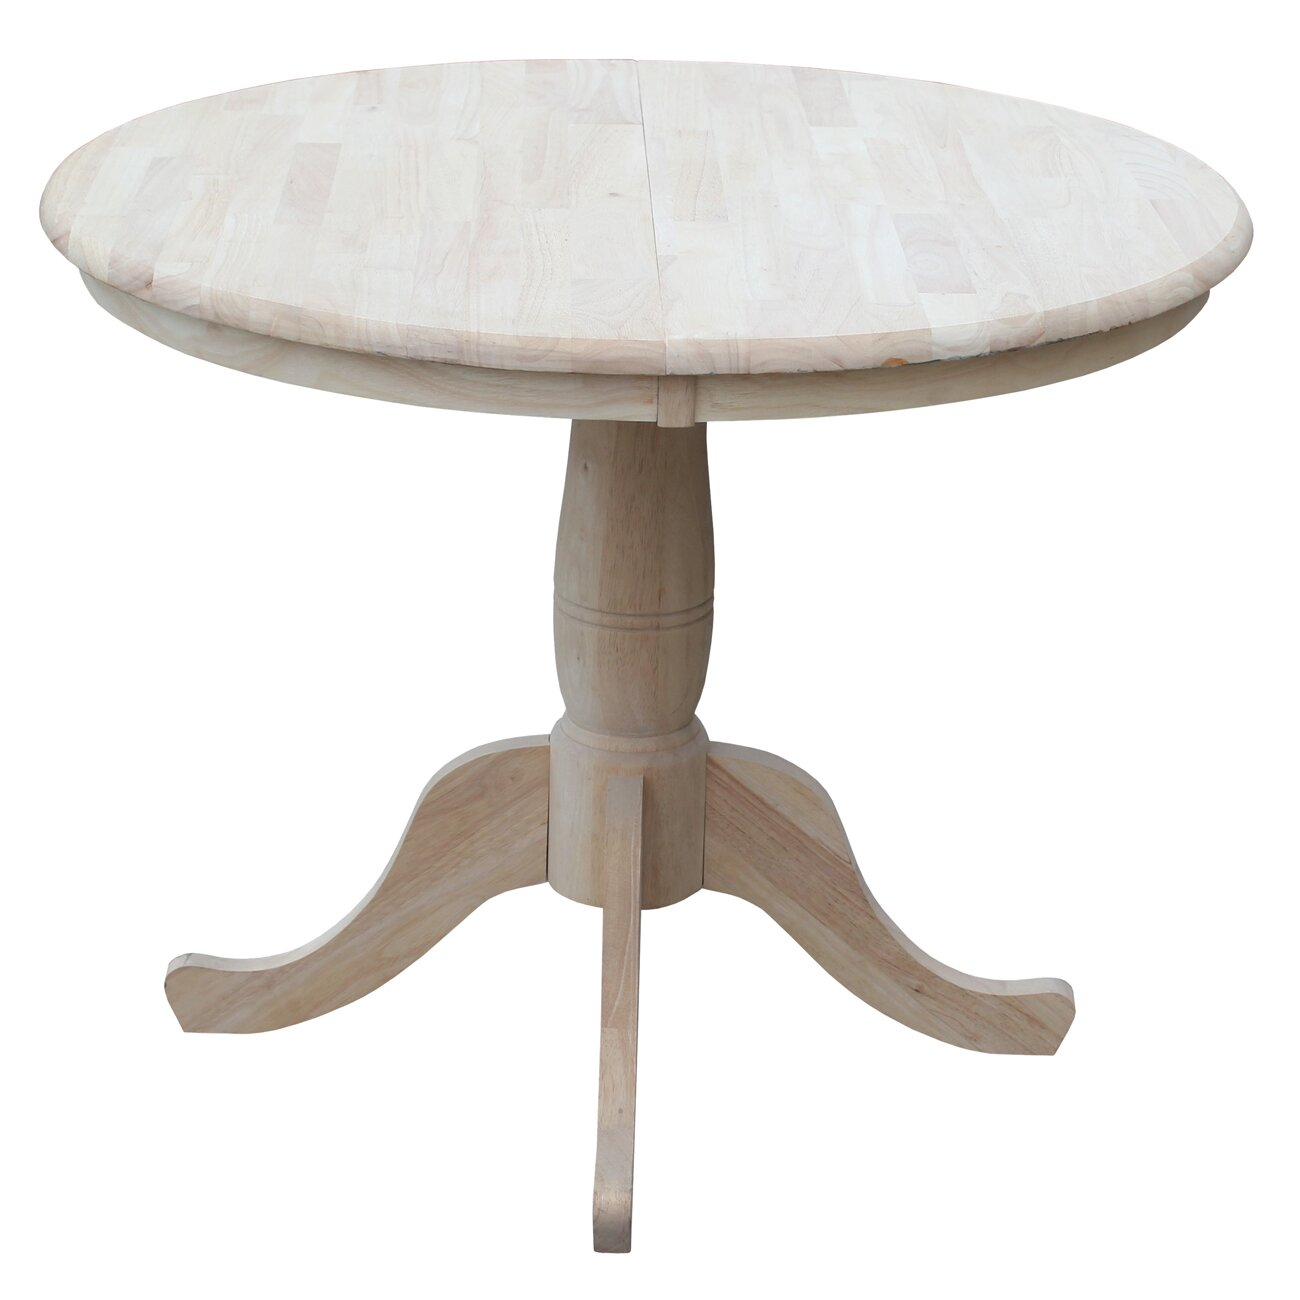 round kitchen dining tables youll love wayfair - Round Pine Kitchen Table